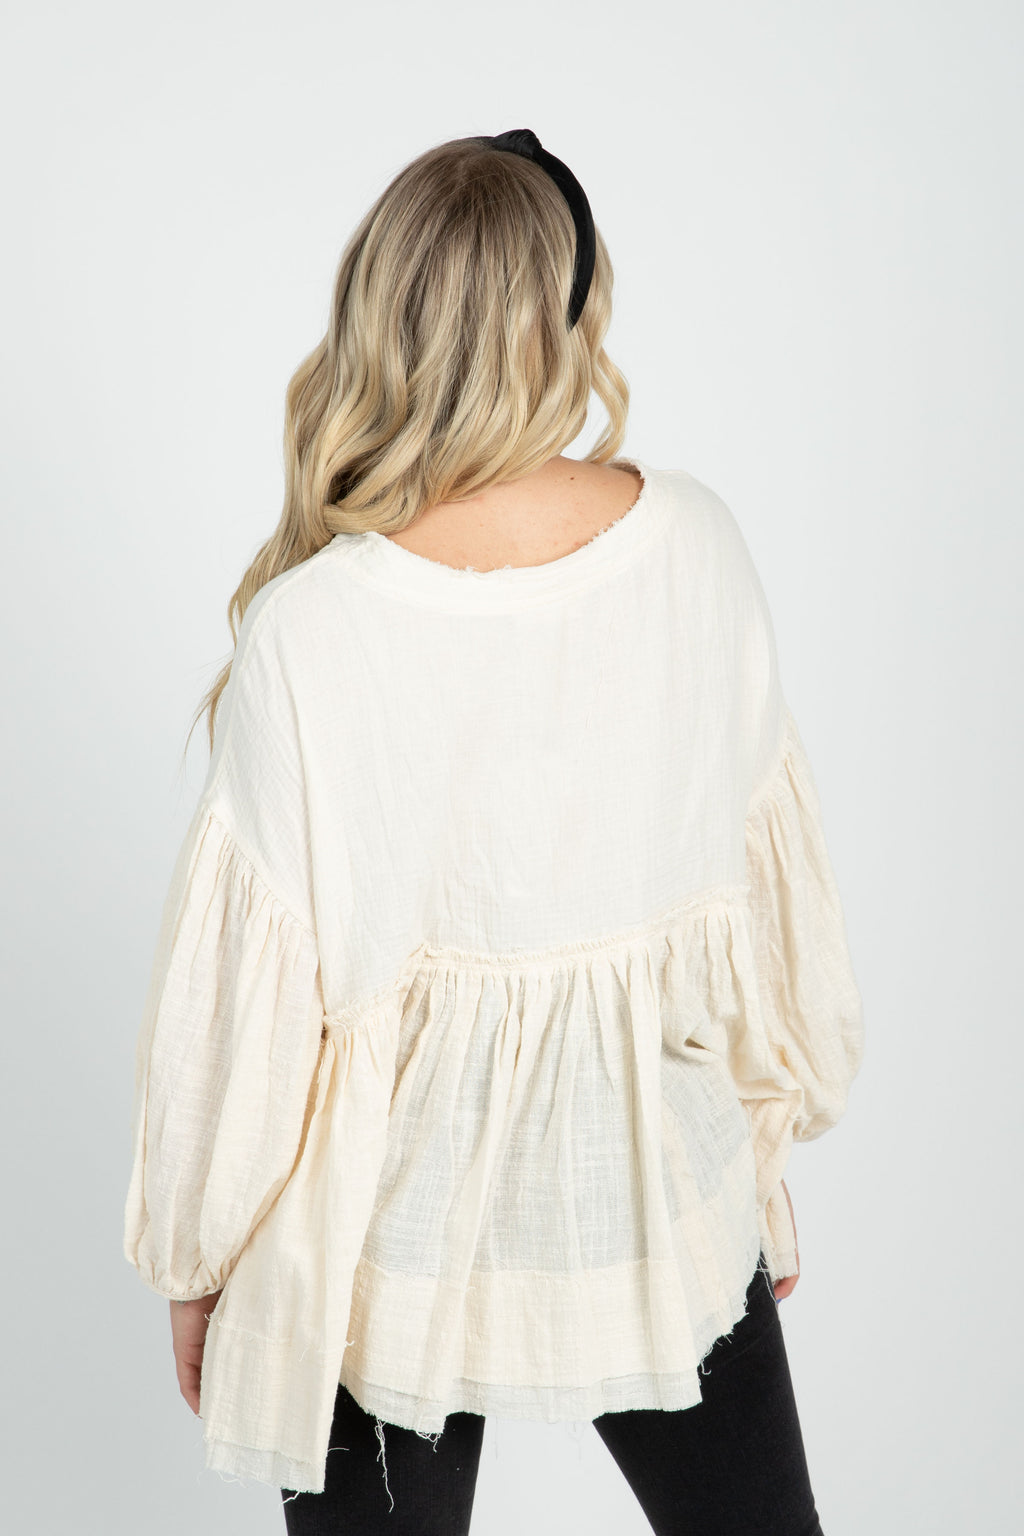 The Cynthia Long Sleeve Babydoll Blouse in Cream